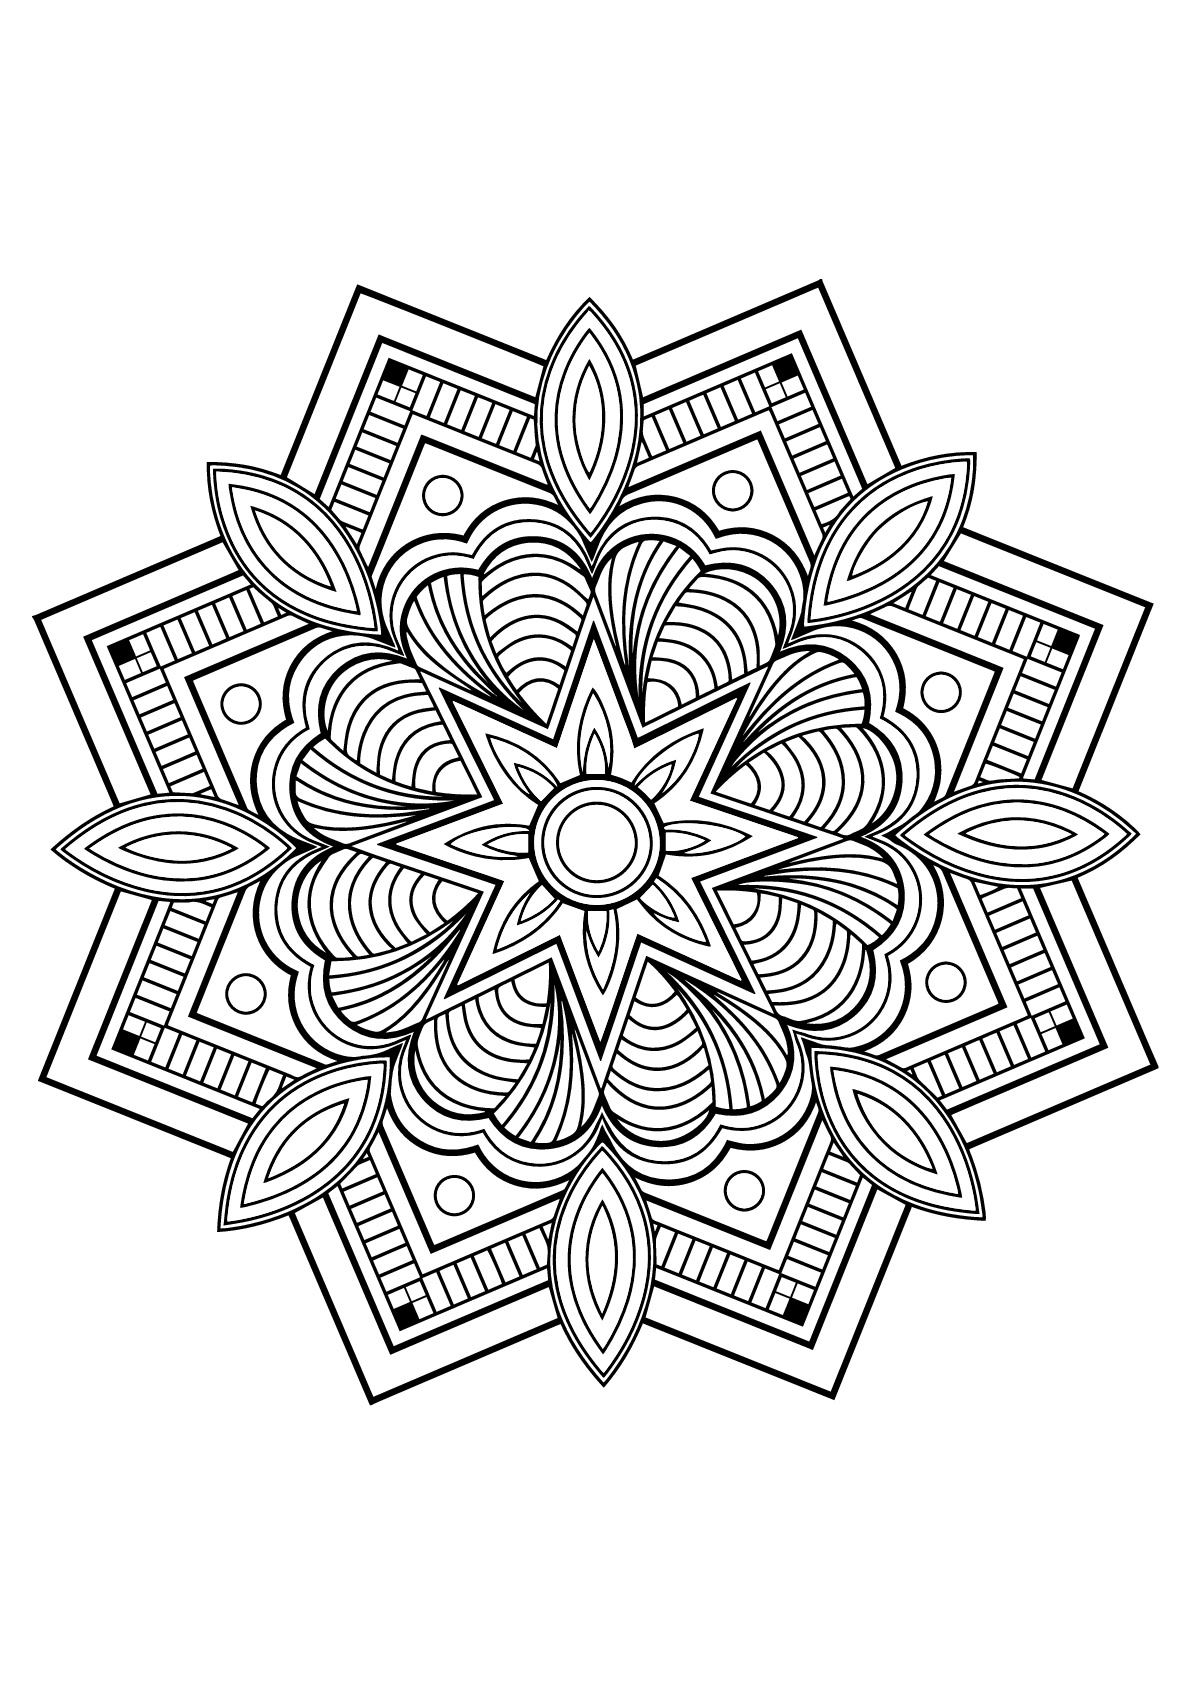 Exclusive Mandala from Free Coloring book for adults